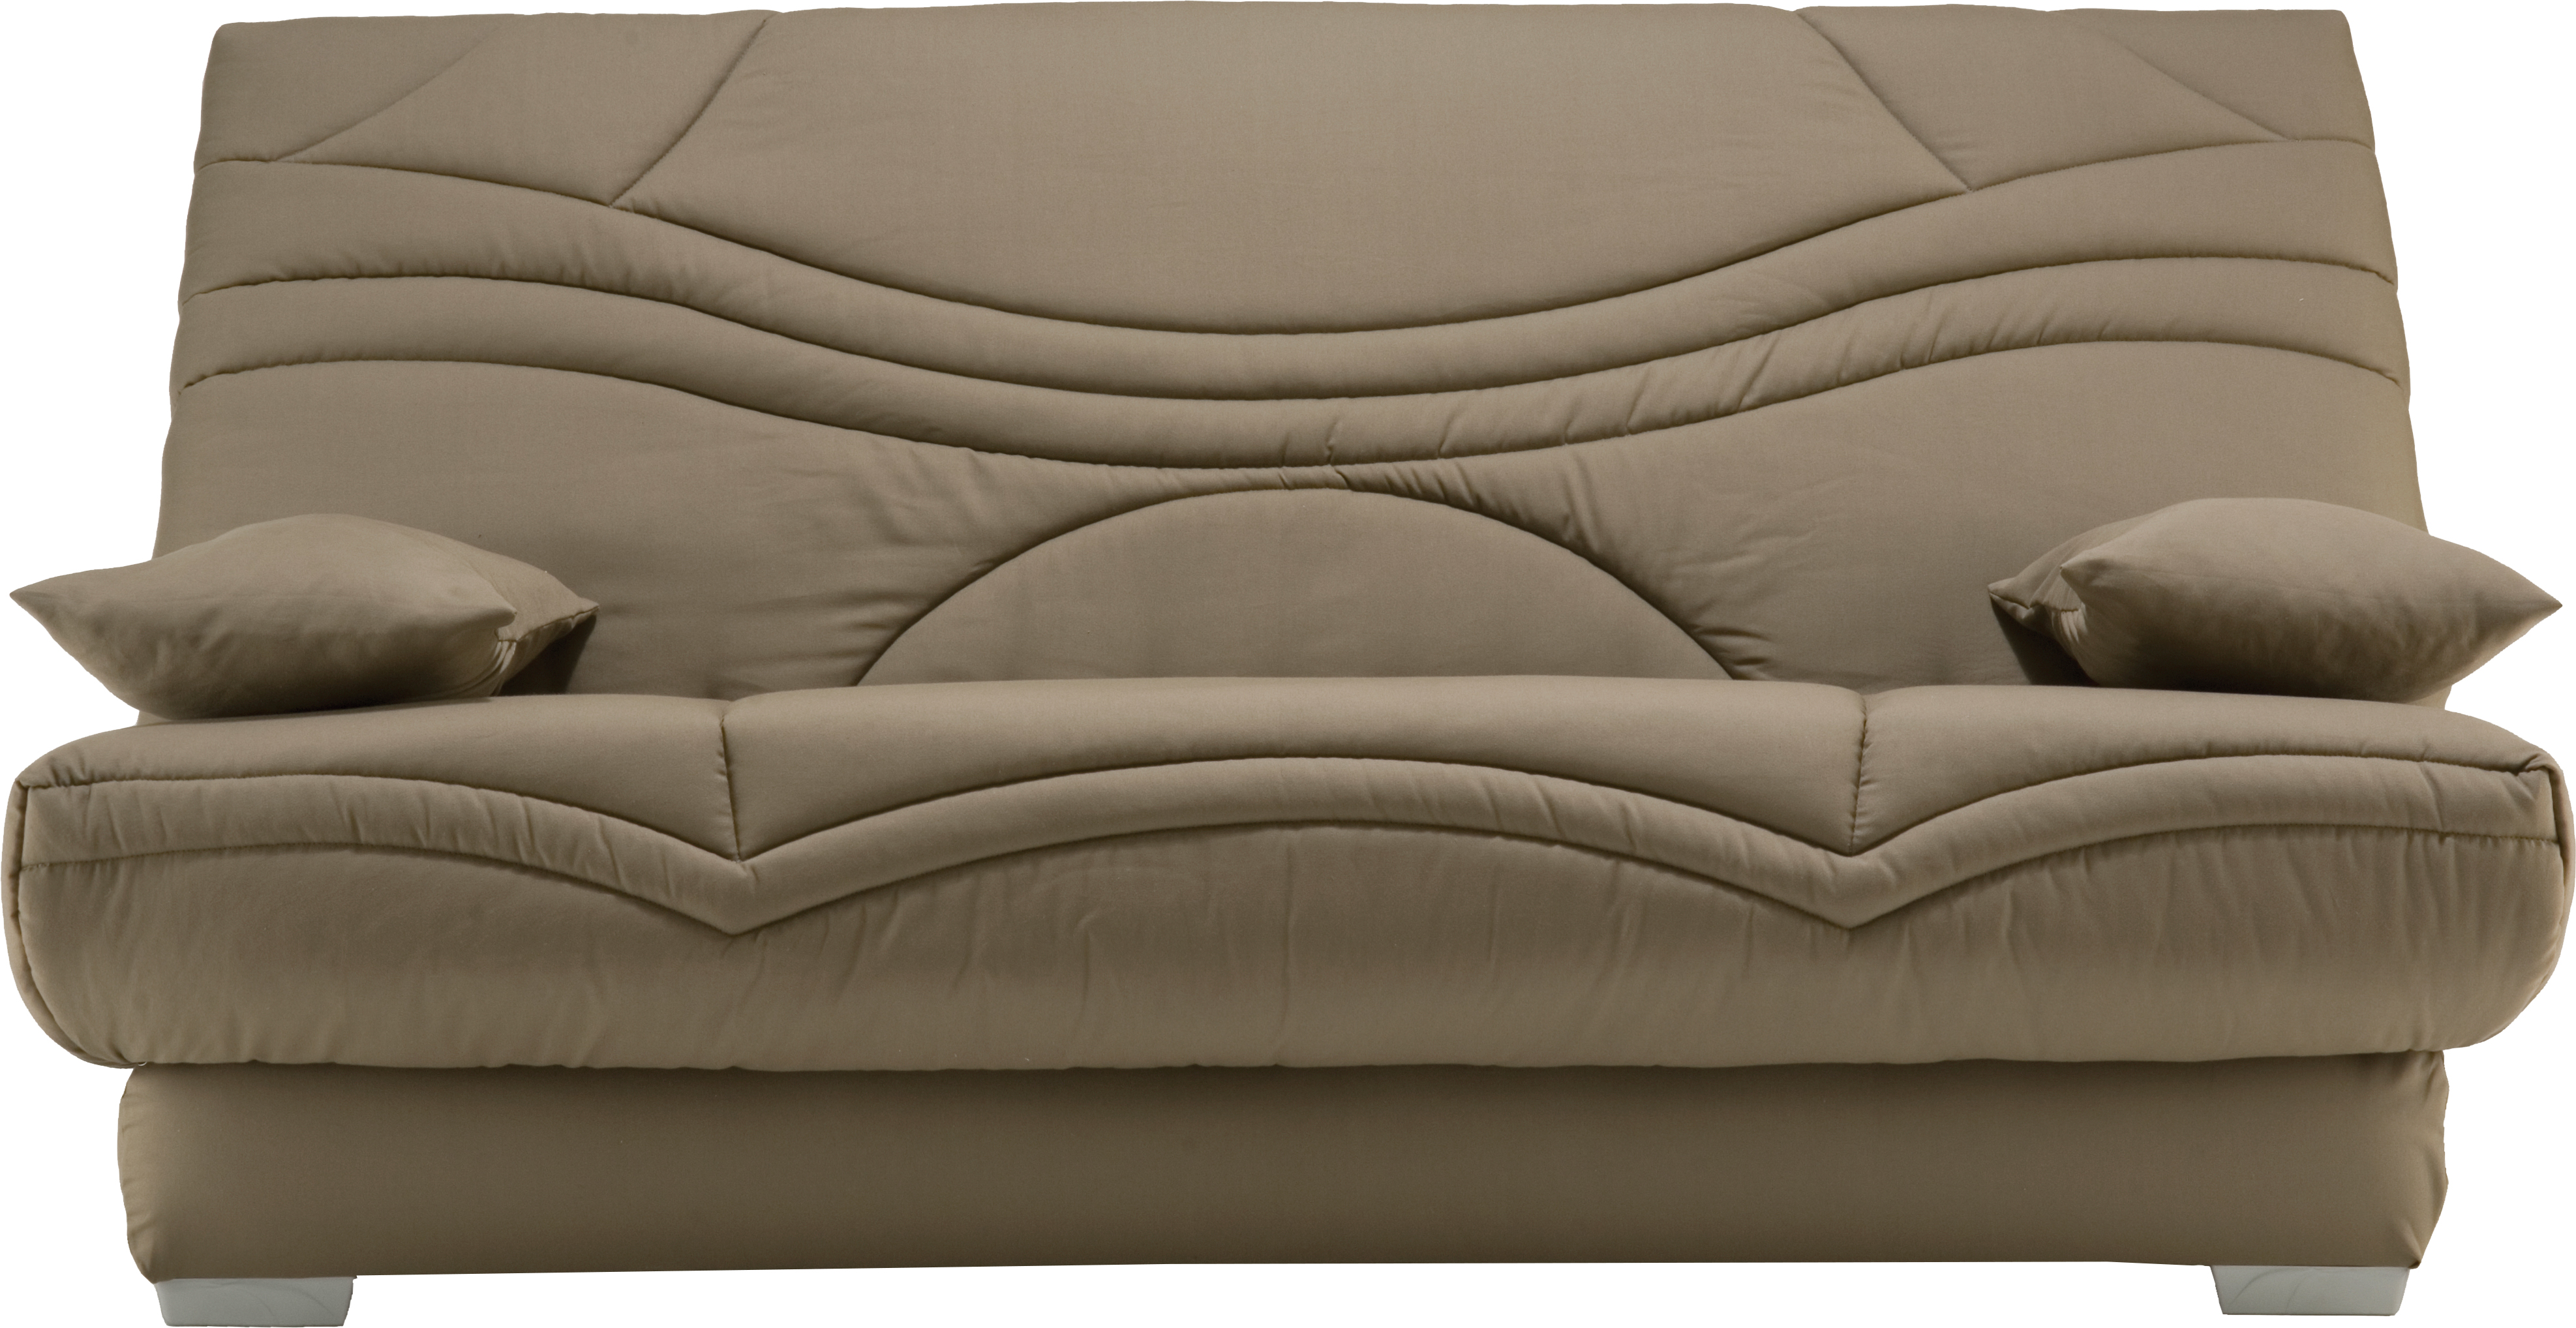 Taupe guide d 39 achat - Matelas banquette clic clac ...